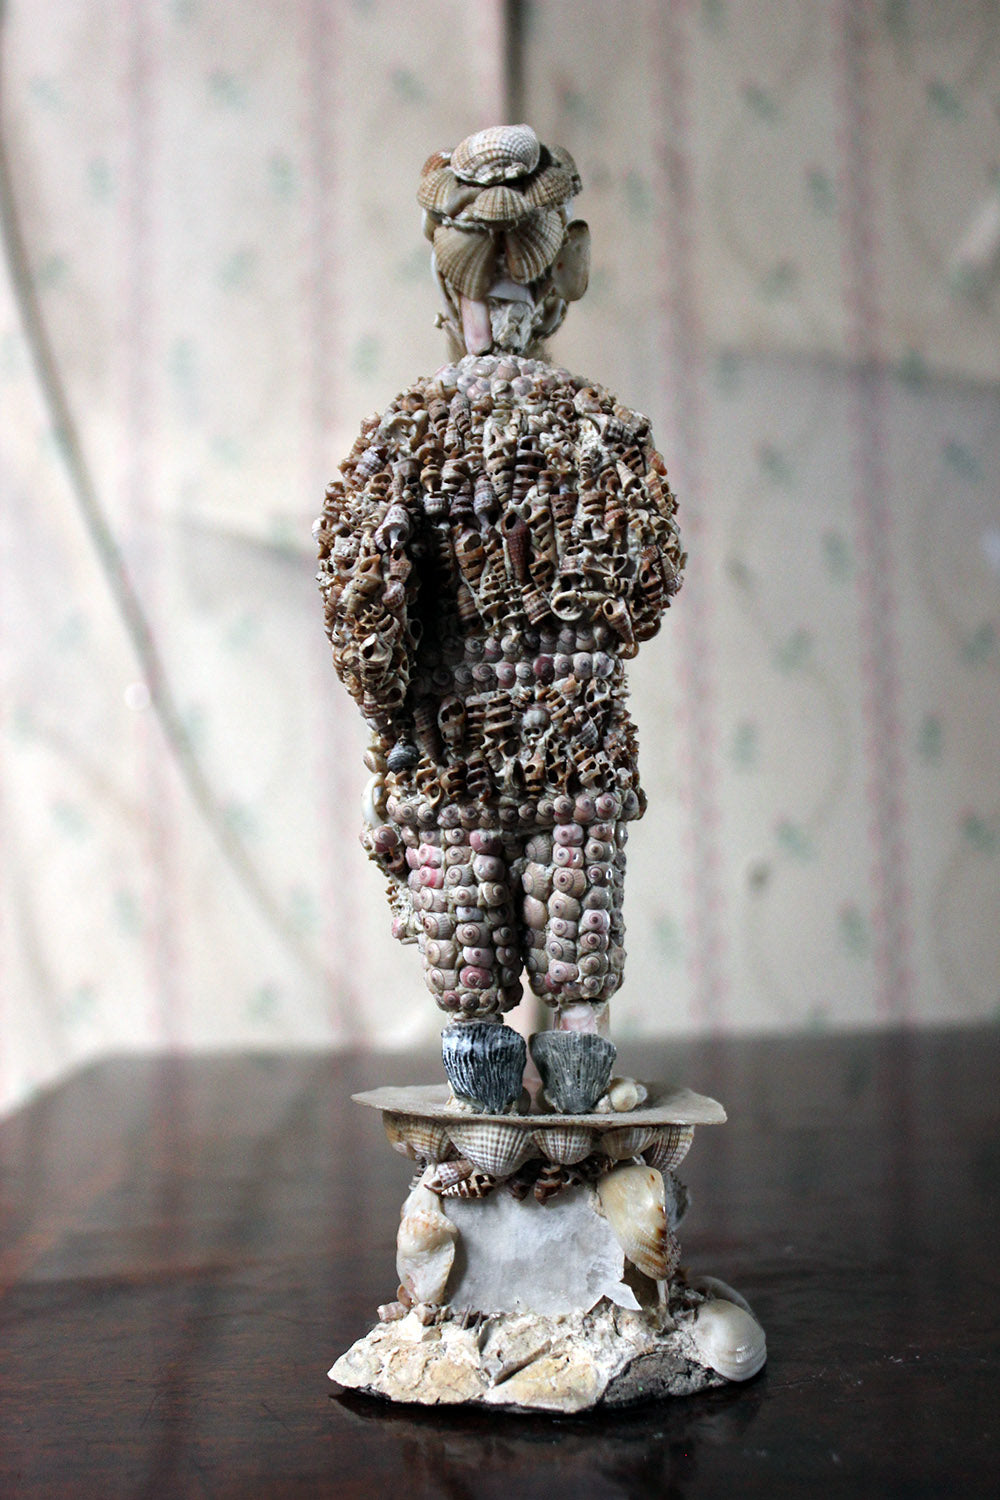 A Rare Early 19thC English Shell-Work Figure of a China Man in the Manner of Giuseppe Arcimboldo